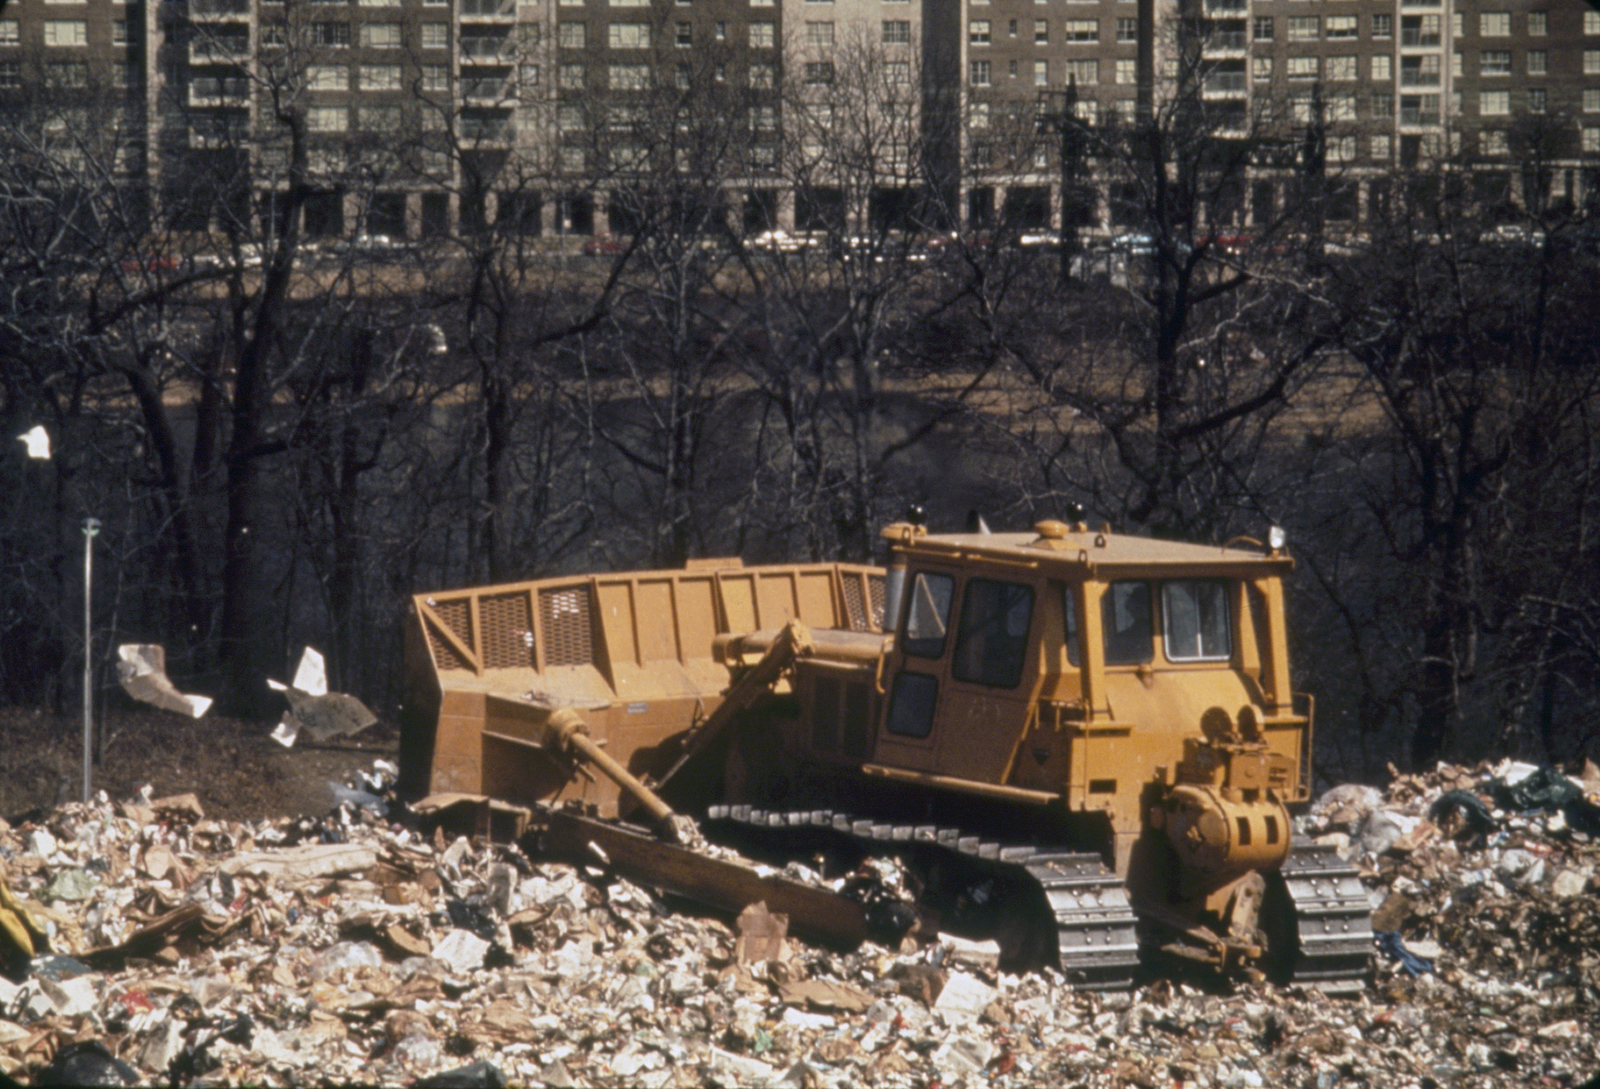 Environmental Images ( Water Treatment Plant, Vegetables, Sculptures, Air Pollution, Oil Tanks, Aerial Photos of Cities, Water Pollution, Waterways, Dumps, Trash) - 9/22/2003